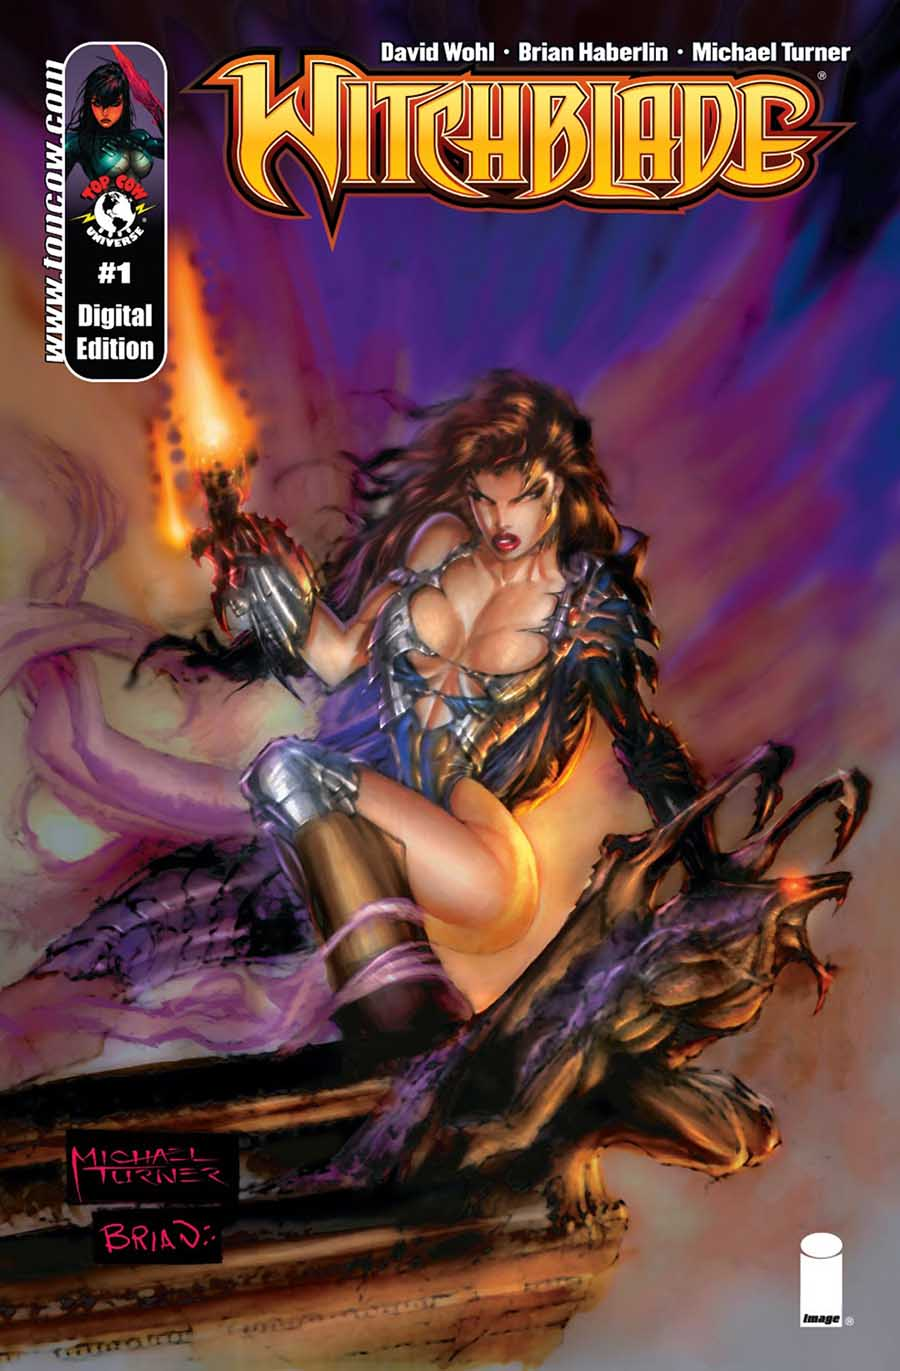 Witchblade (Michael Turner)